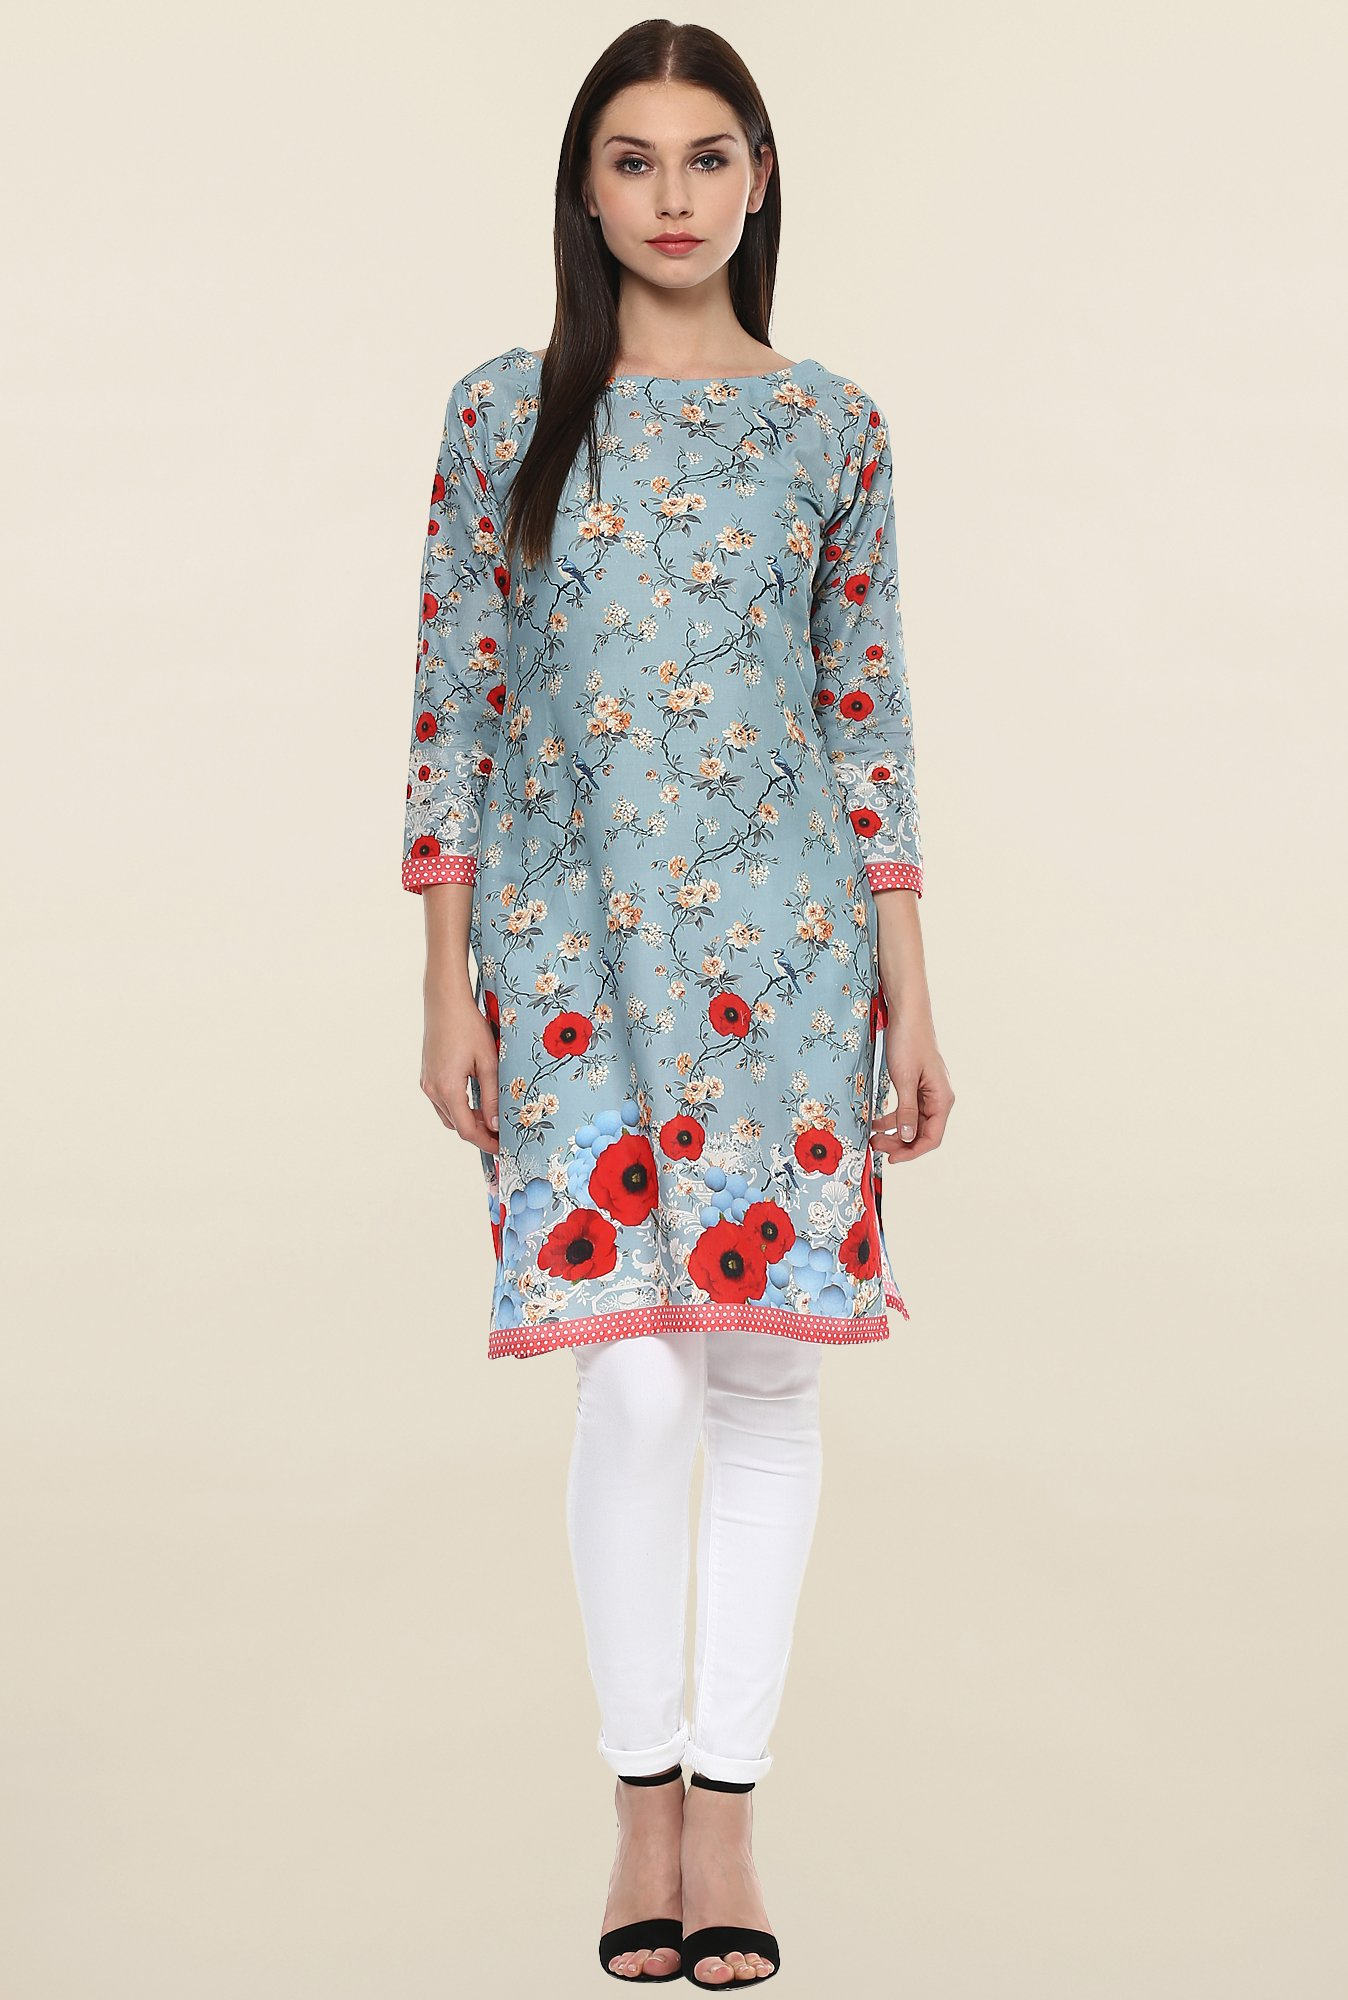 Ahalyaa Light Blue Floral Print Cotton Kurti